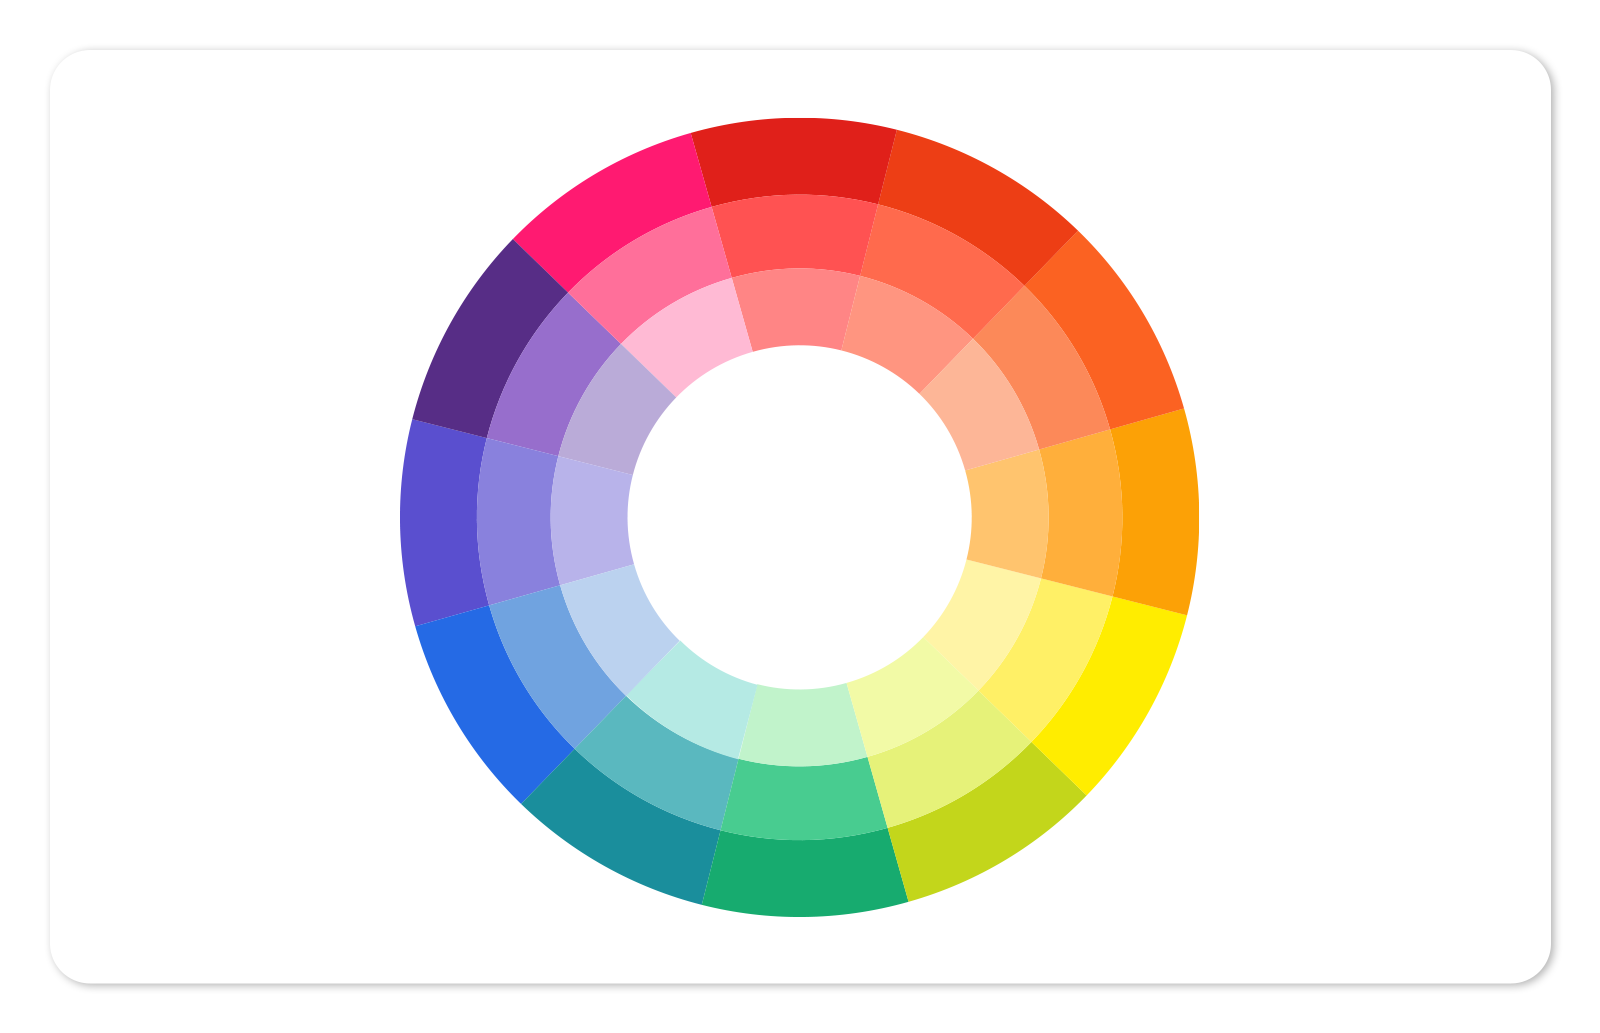 Use Color Theory To Choose The Best Colors For Your Designs PicMonkey Blog